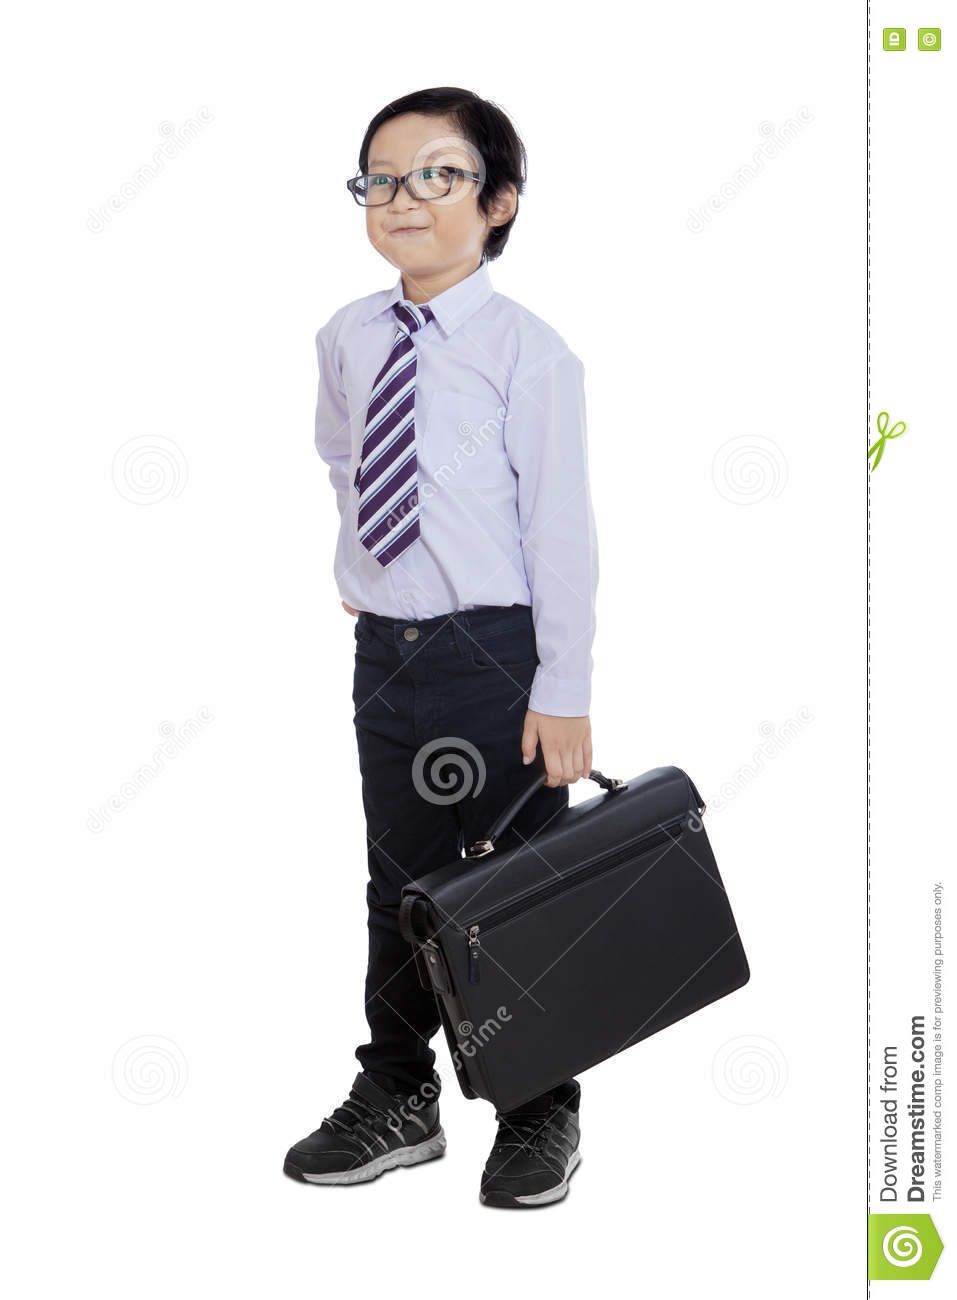 Little Entrepreneur Carrying Bag In Studio Stock Photo - Image 77462897